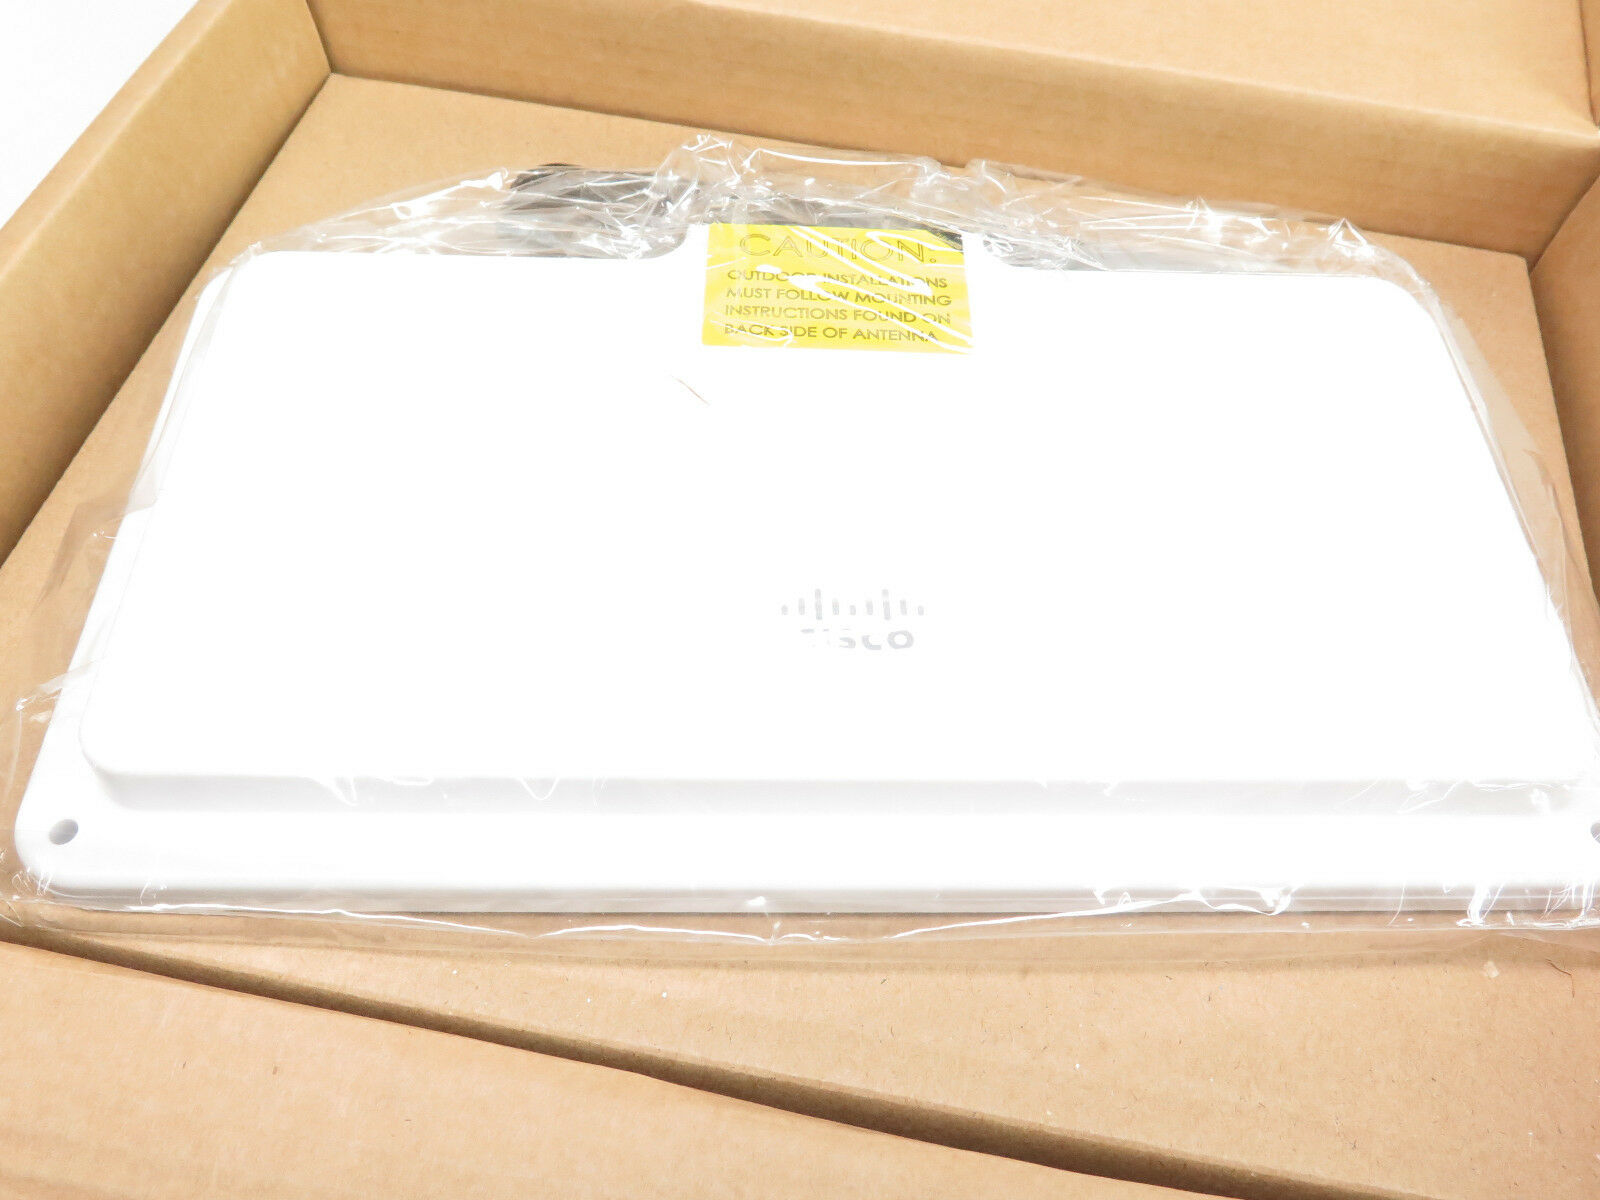 CASE of 5 NEW Cisco AIR-ANT2460NP-R 2.4GHz 6dBi 802.11n Directional Antenna